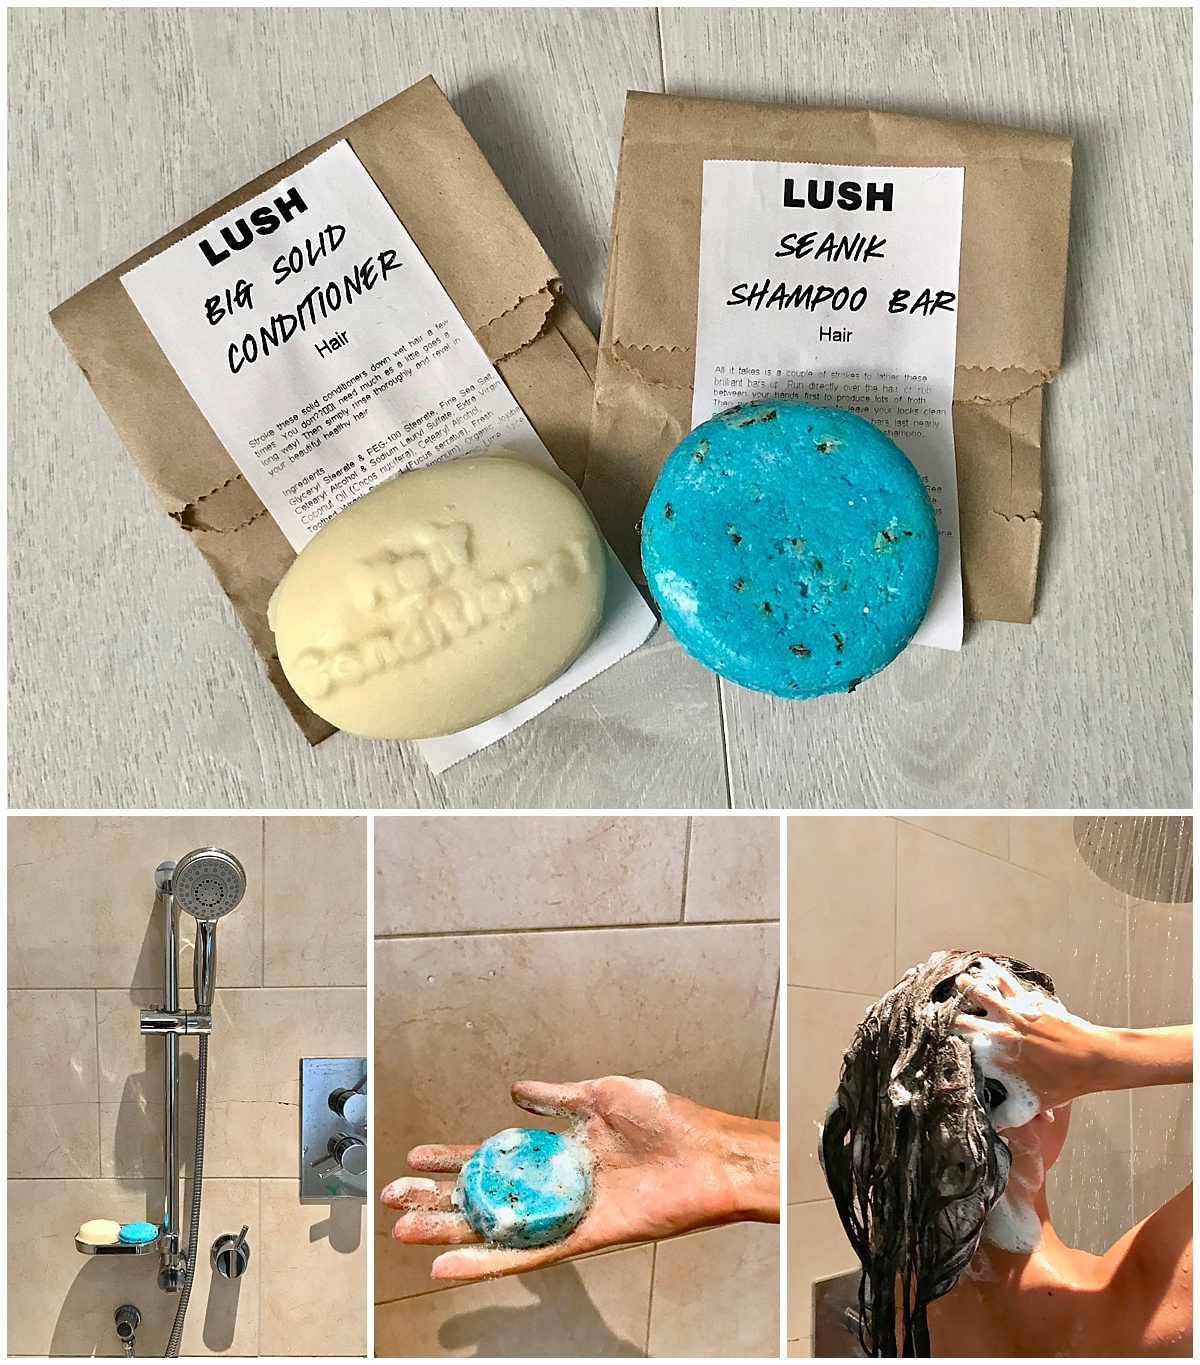 Lush Shampoo Bar Review